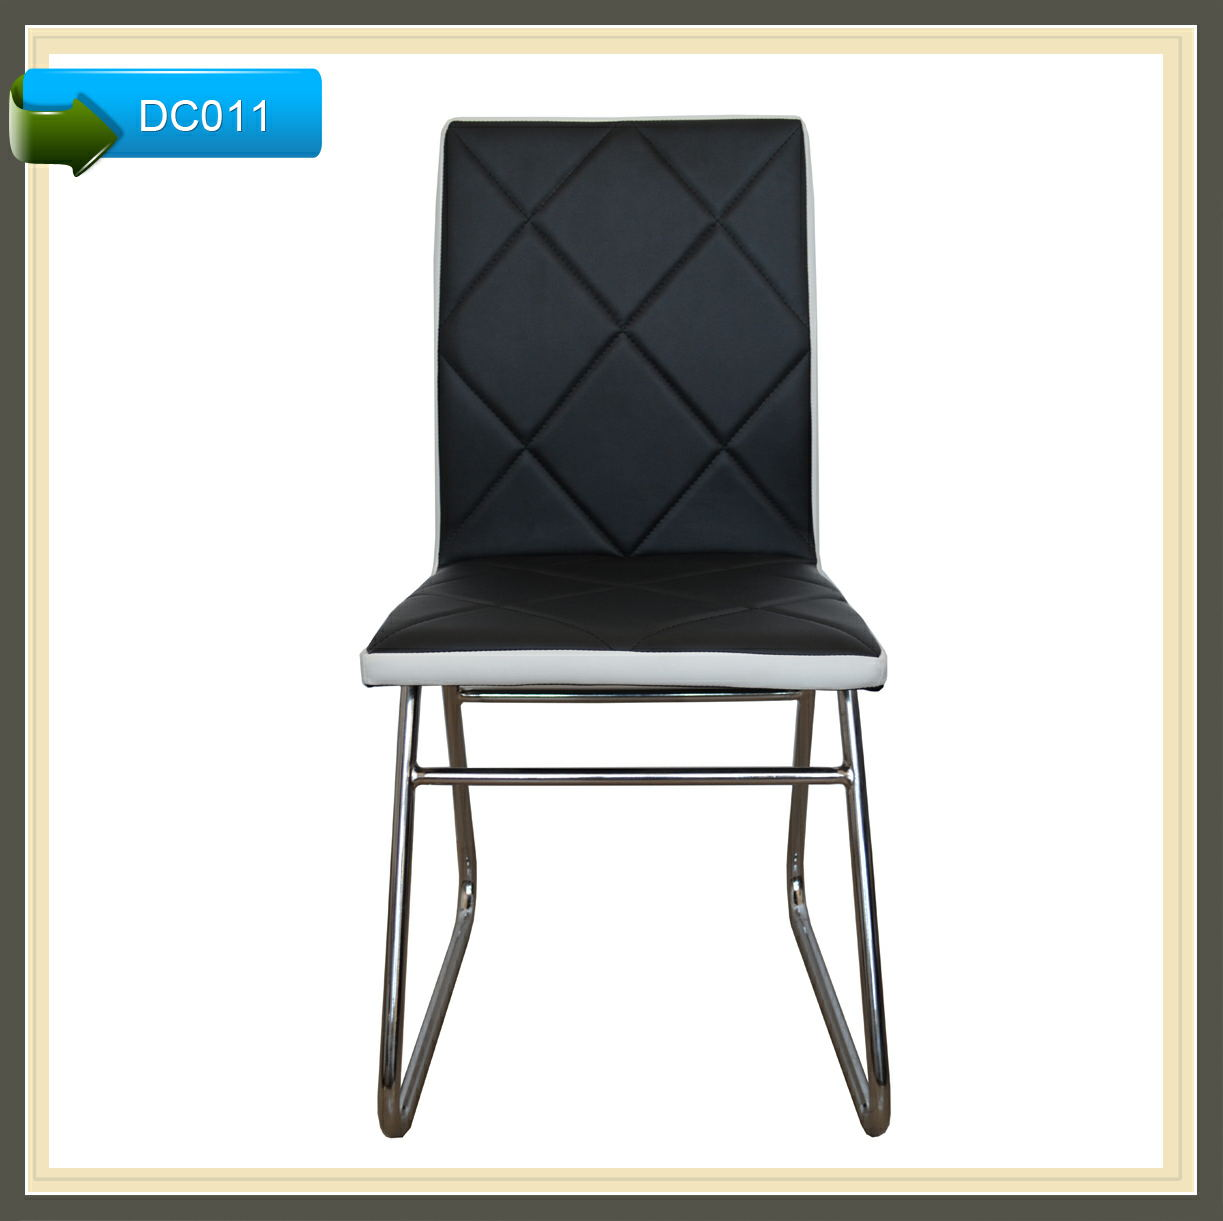 metal framed black leather z shape dining chairs and tables DC011